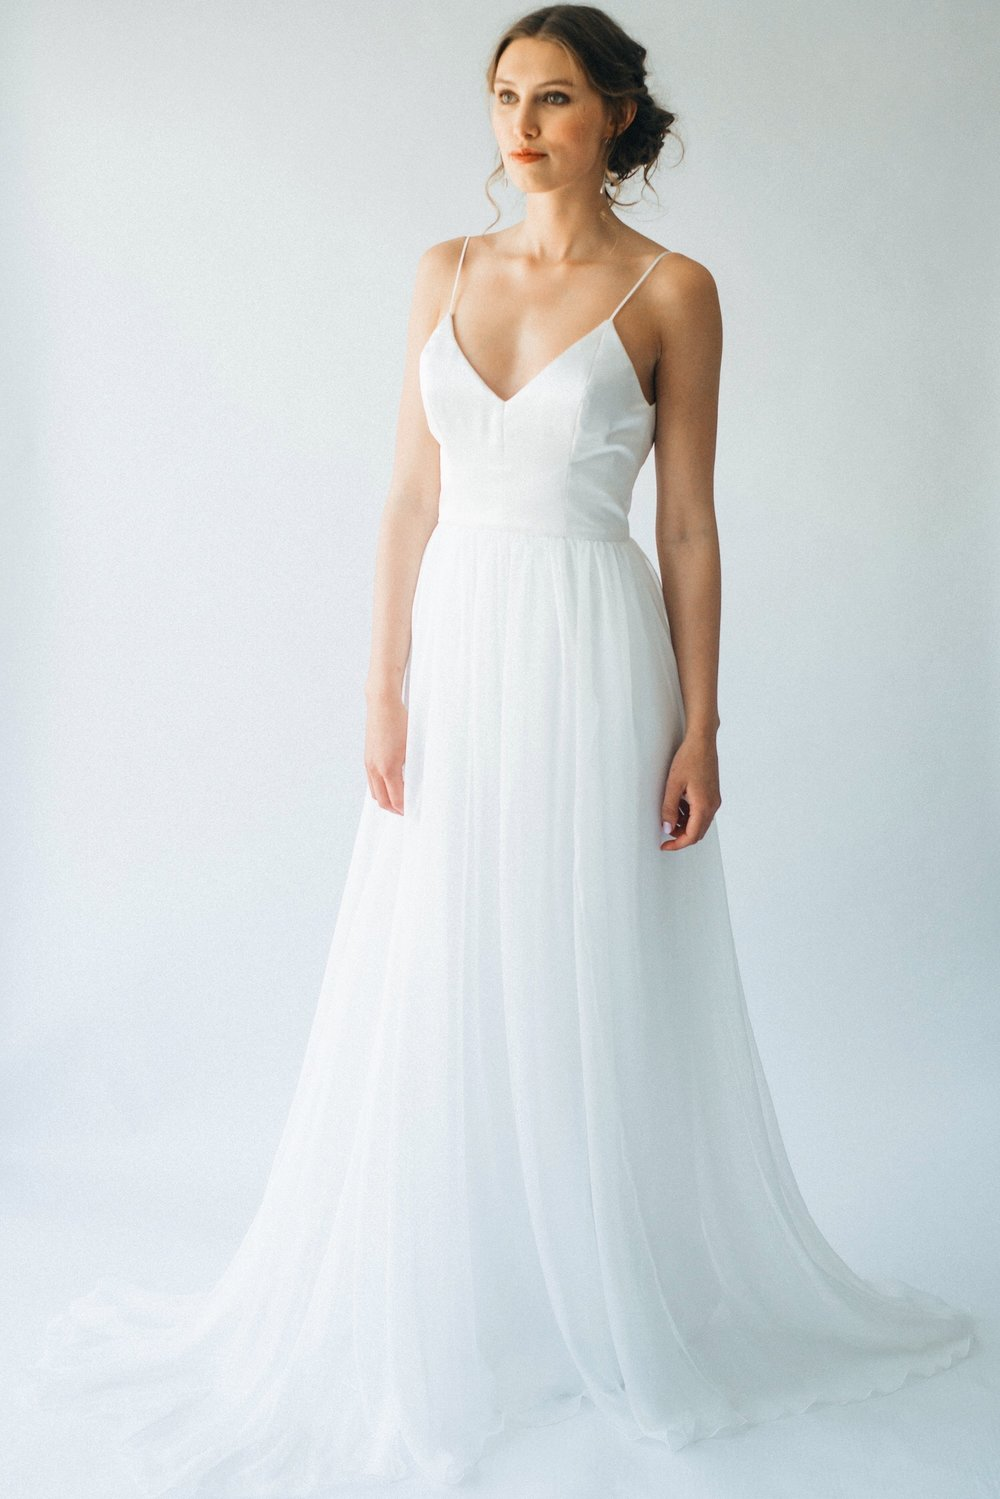 Eco friendly silk wedding dress